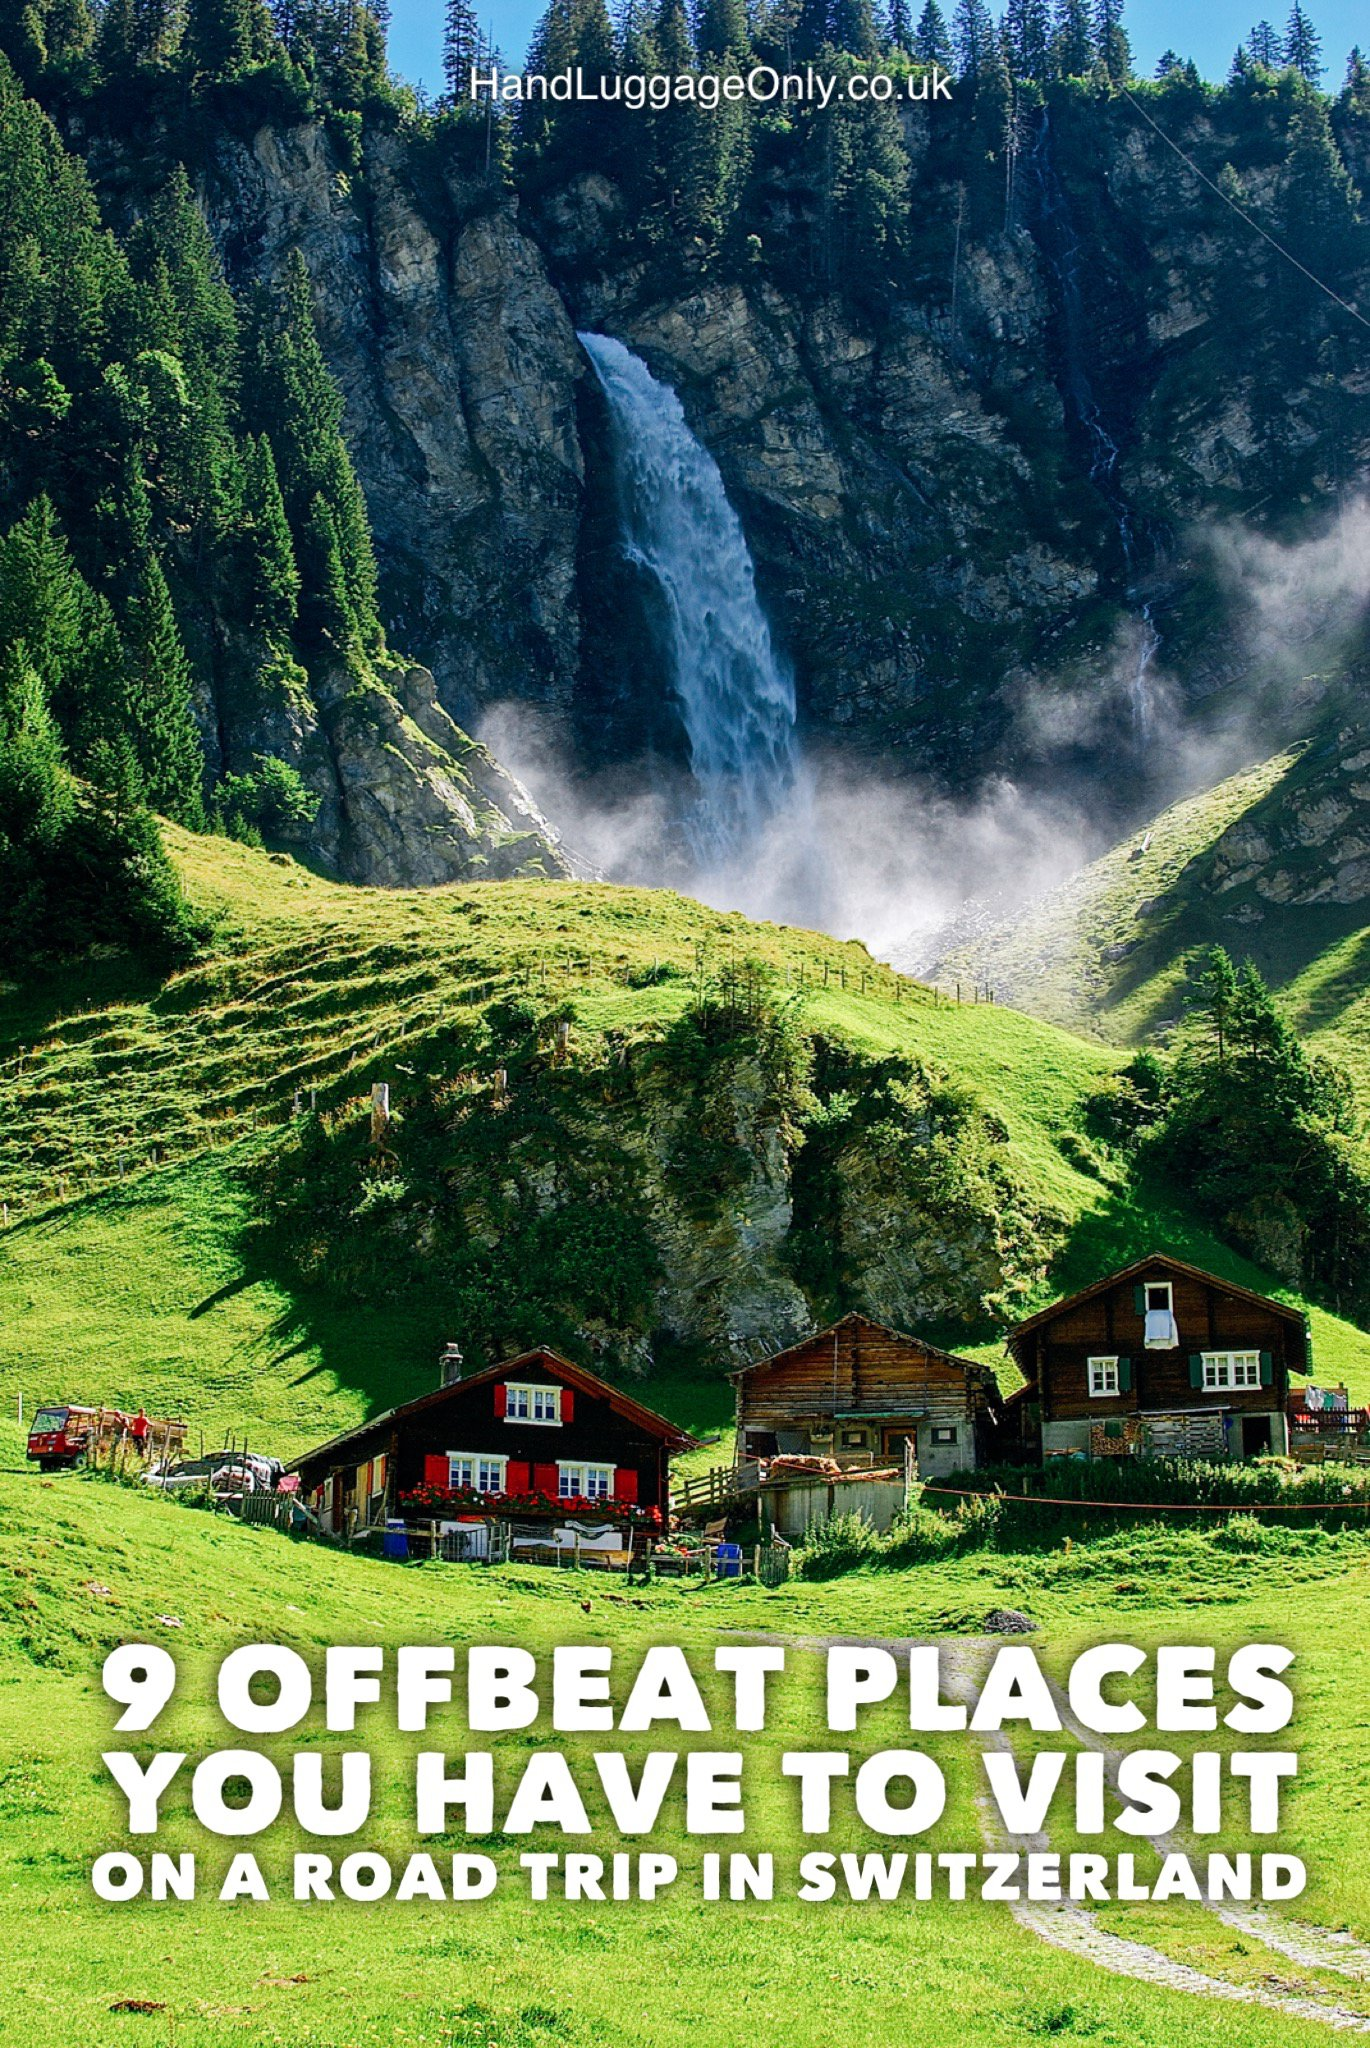 9 OffBeat Places You Have To Visit On A Road Trip In Switzerland (1)